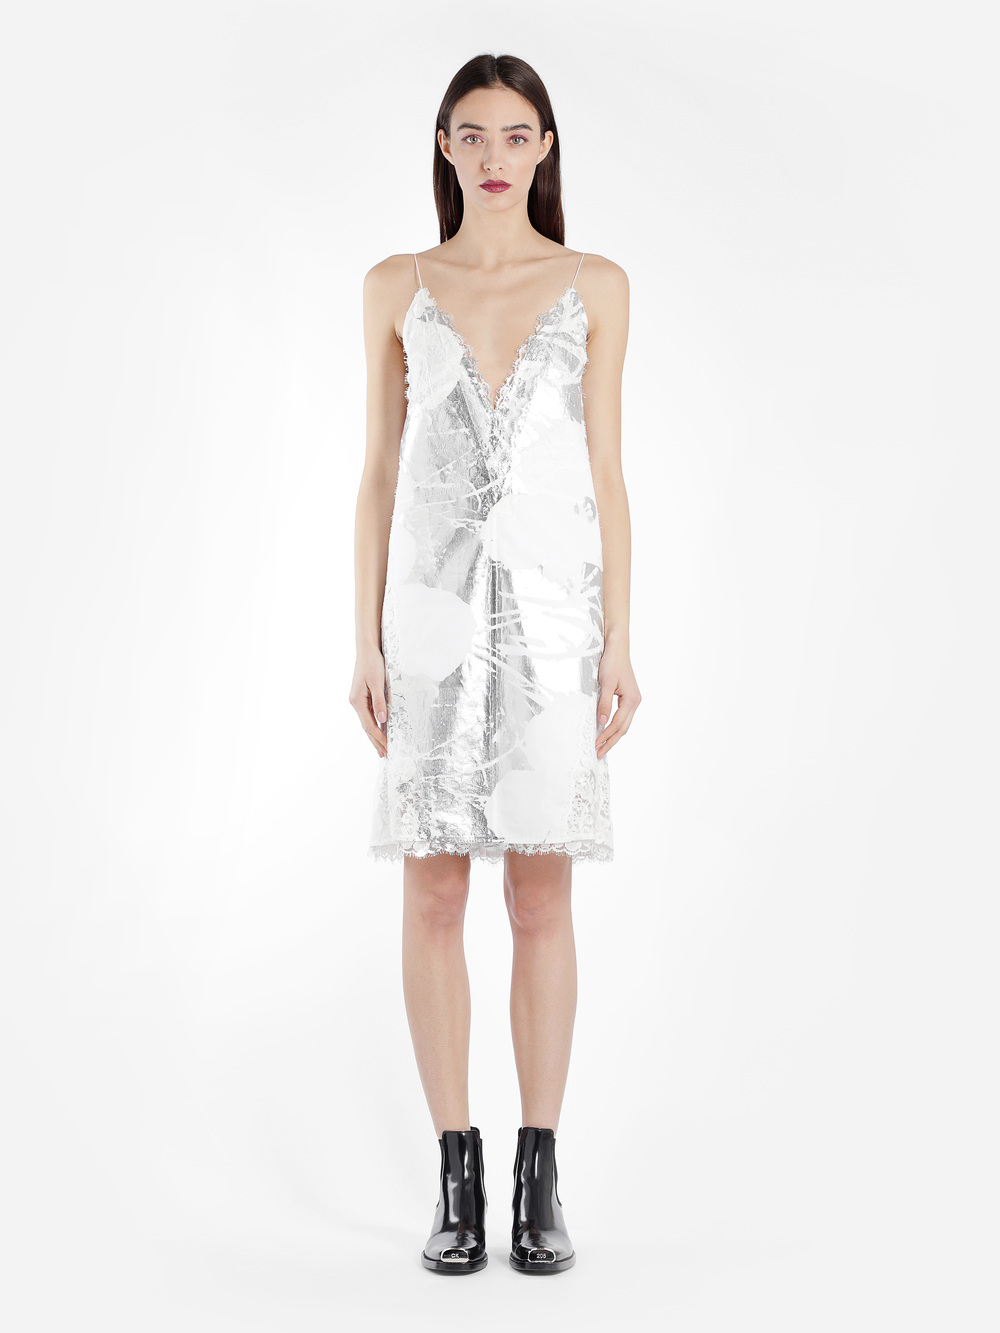 Image of Calvin Klein 205W39NYC Dresses